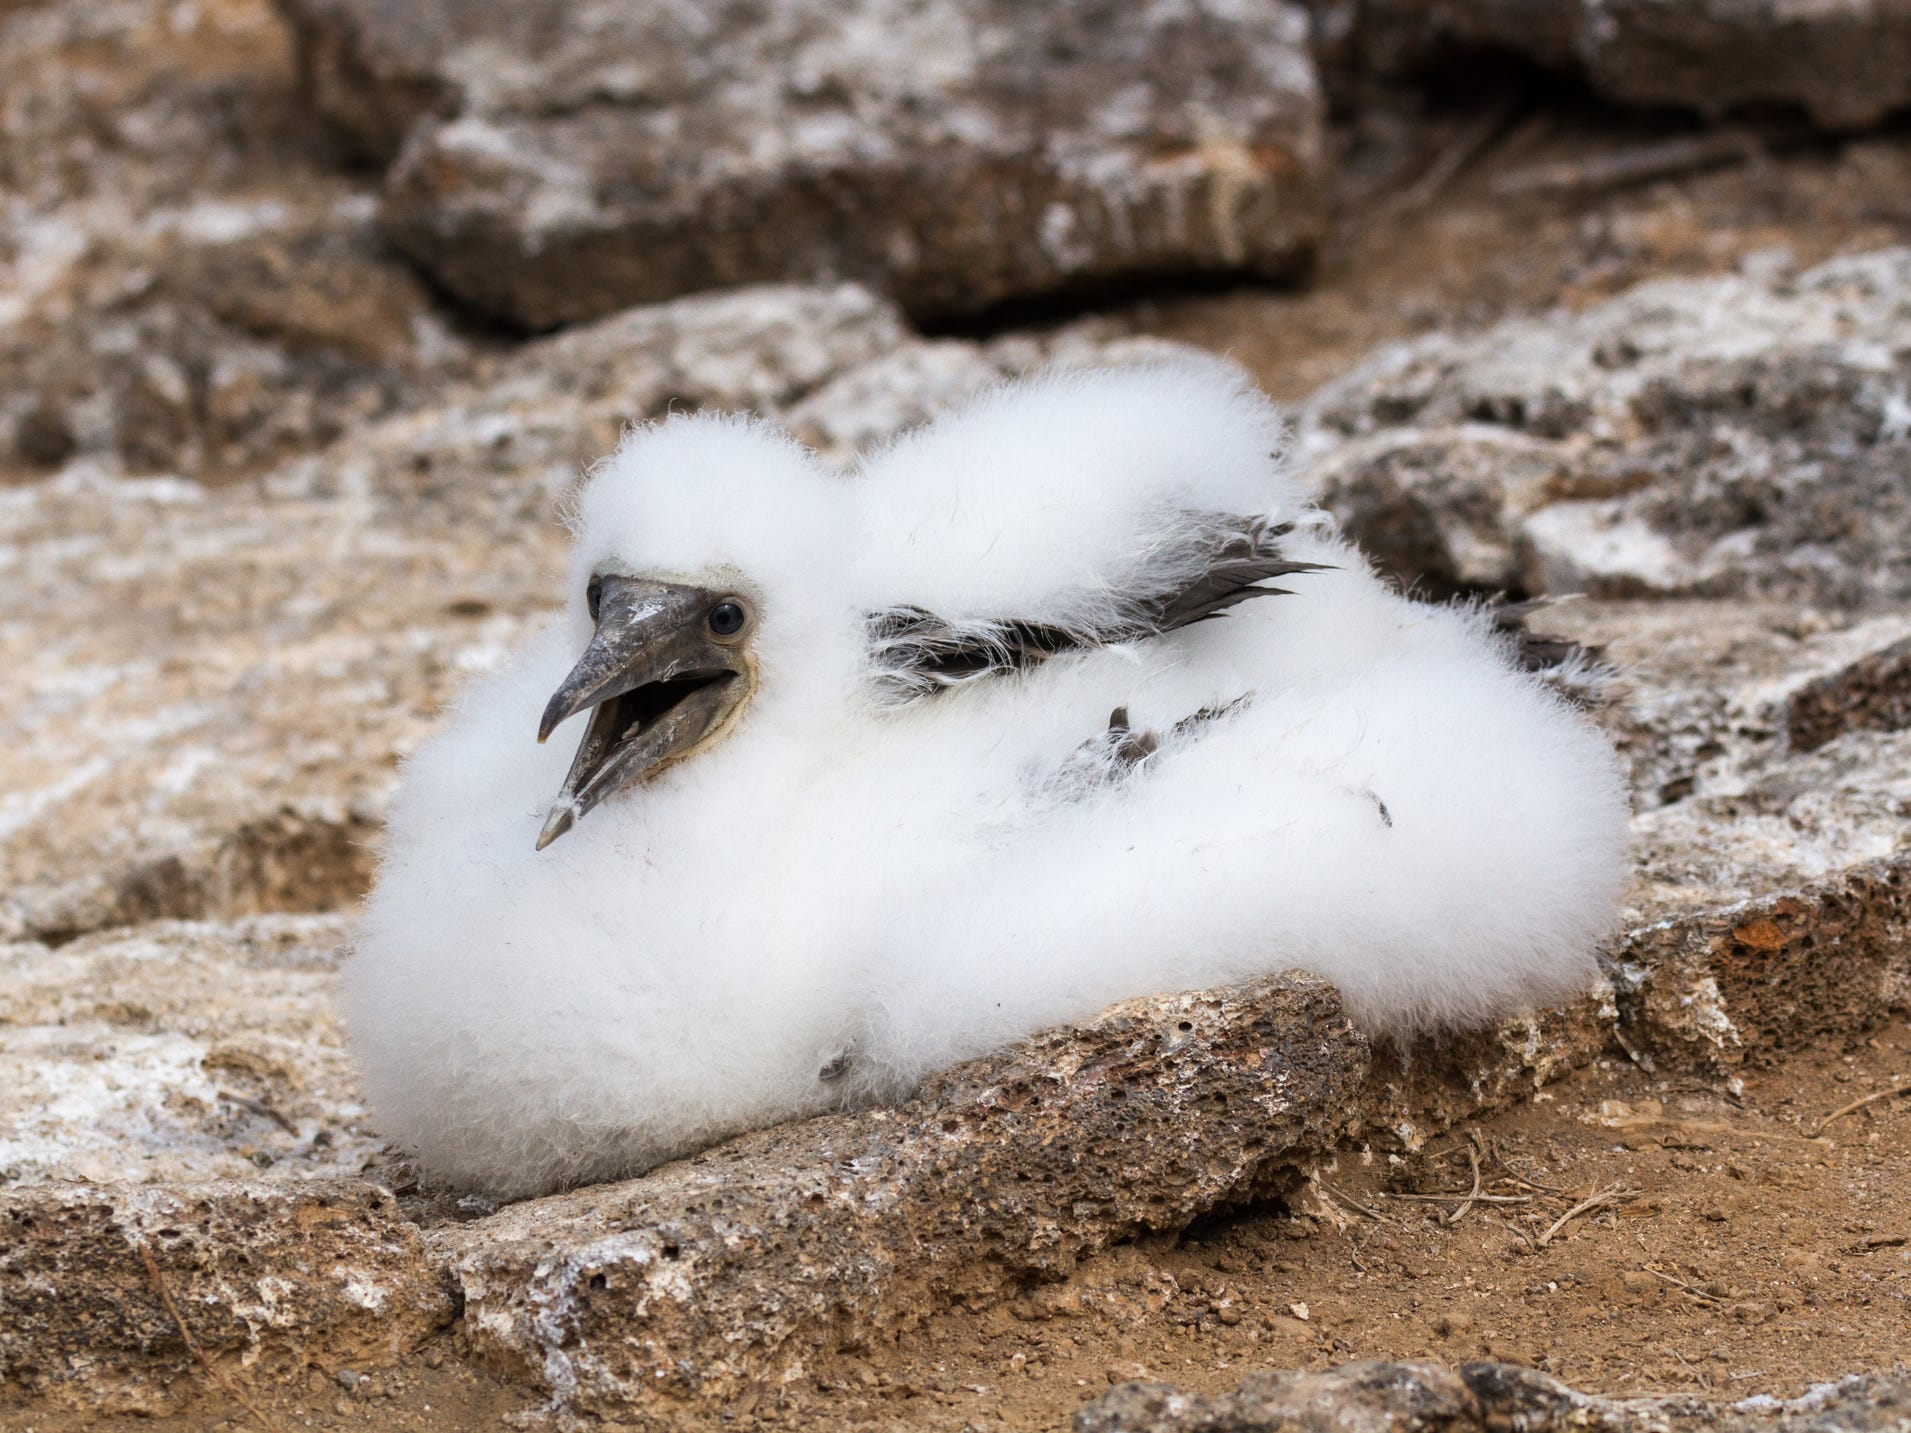 A Nazca booby chick in the Galapagos Islands, Ecuador.